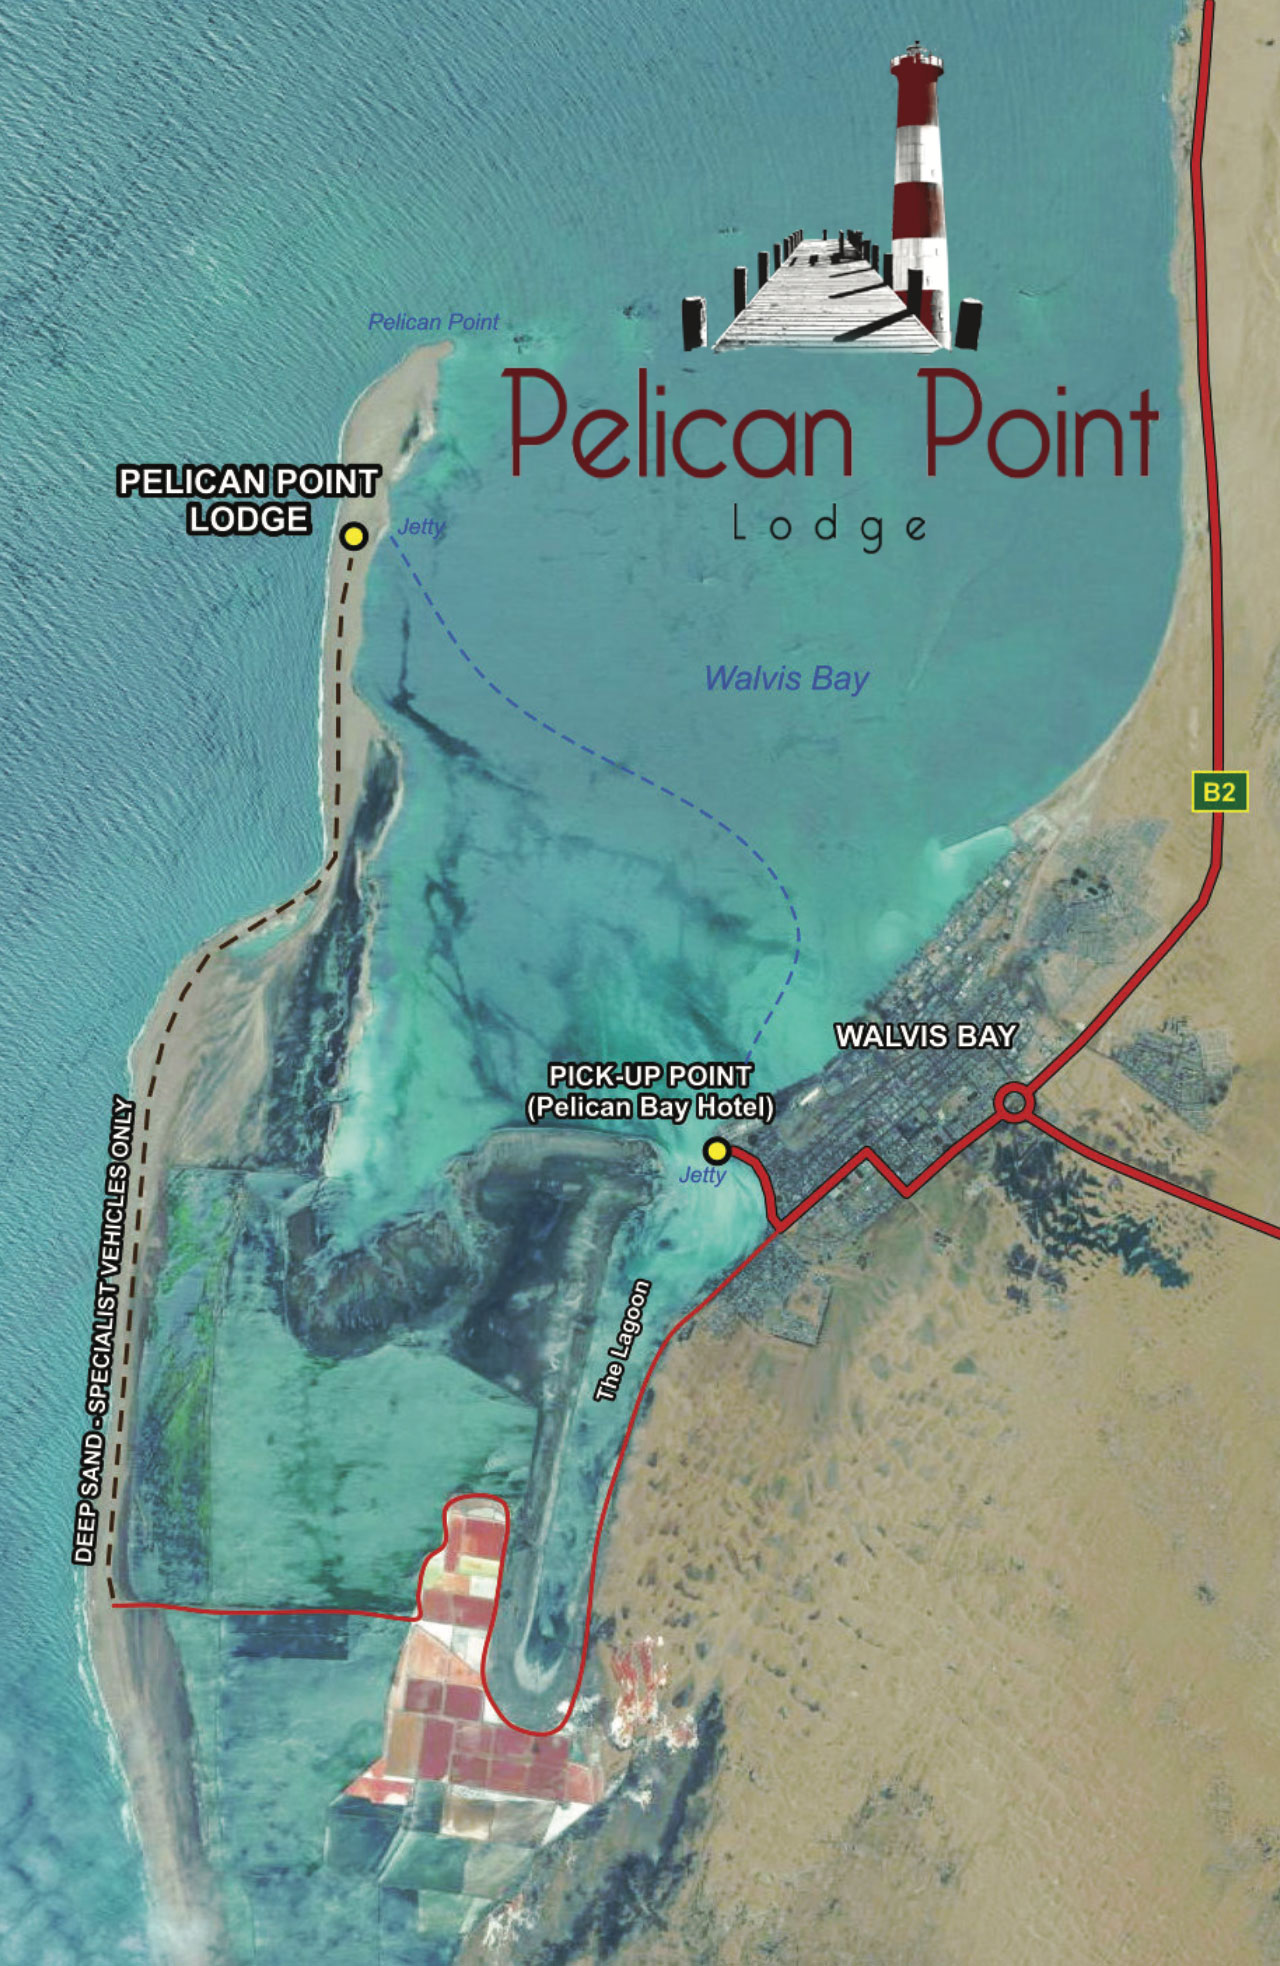 Map to Pelican Point